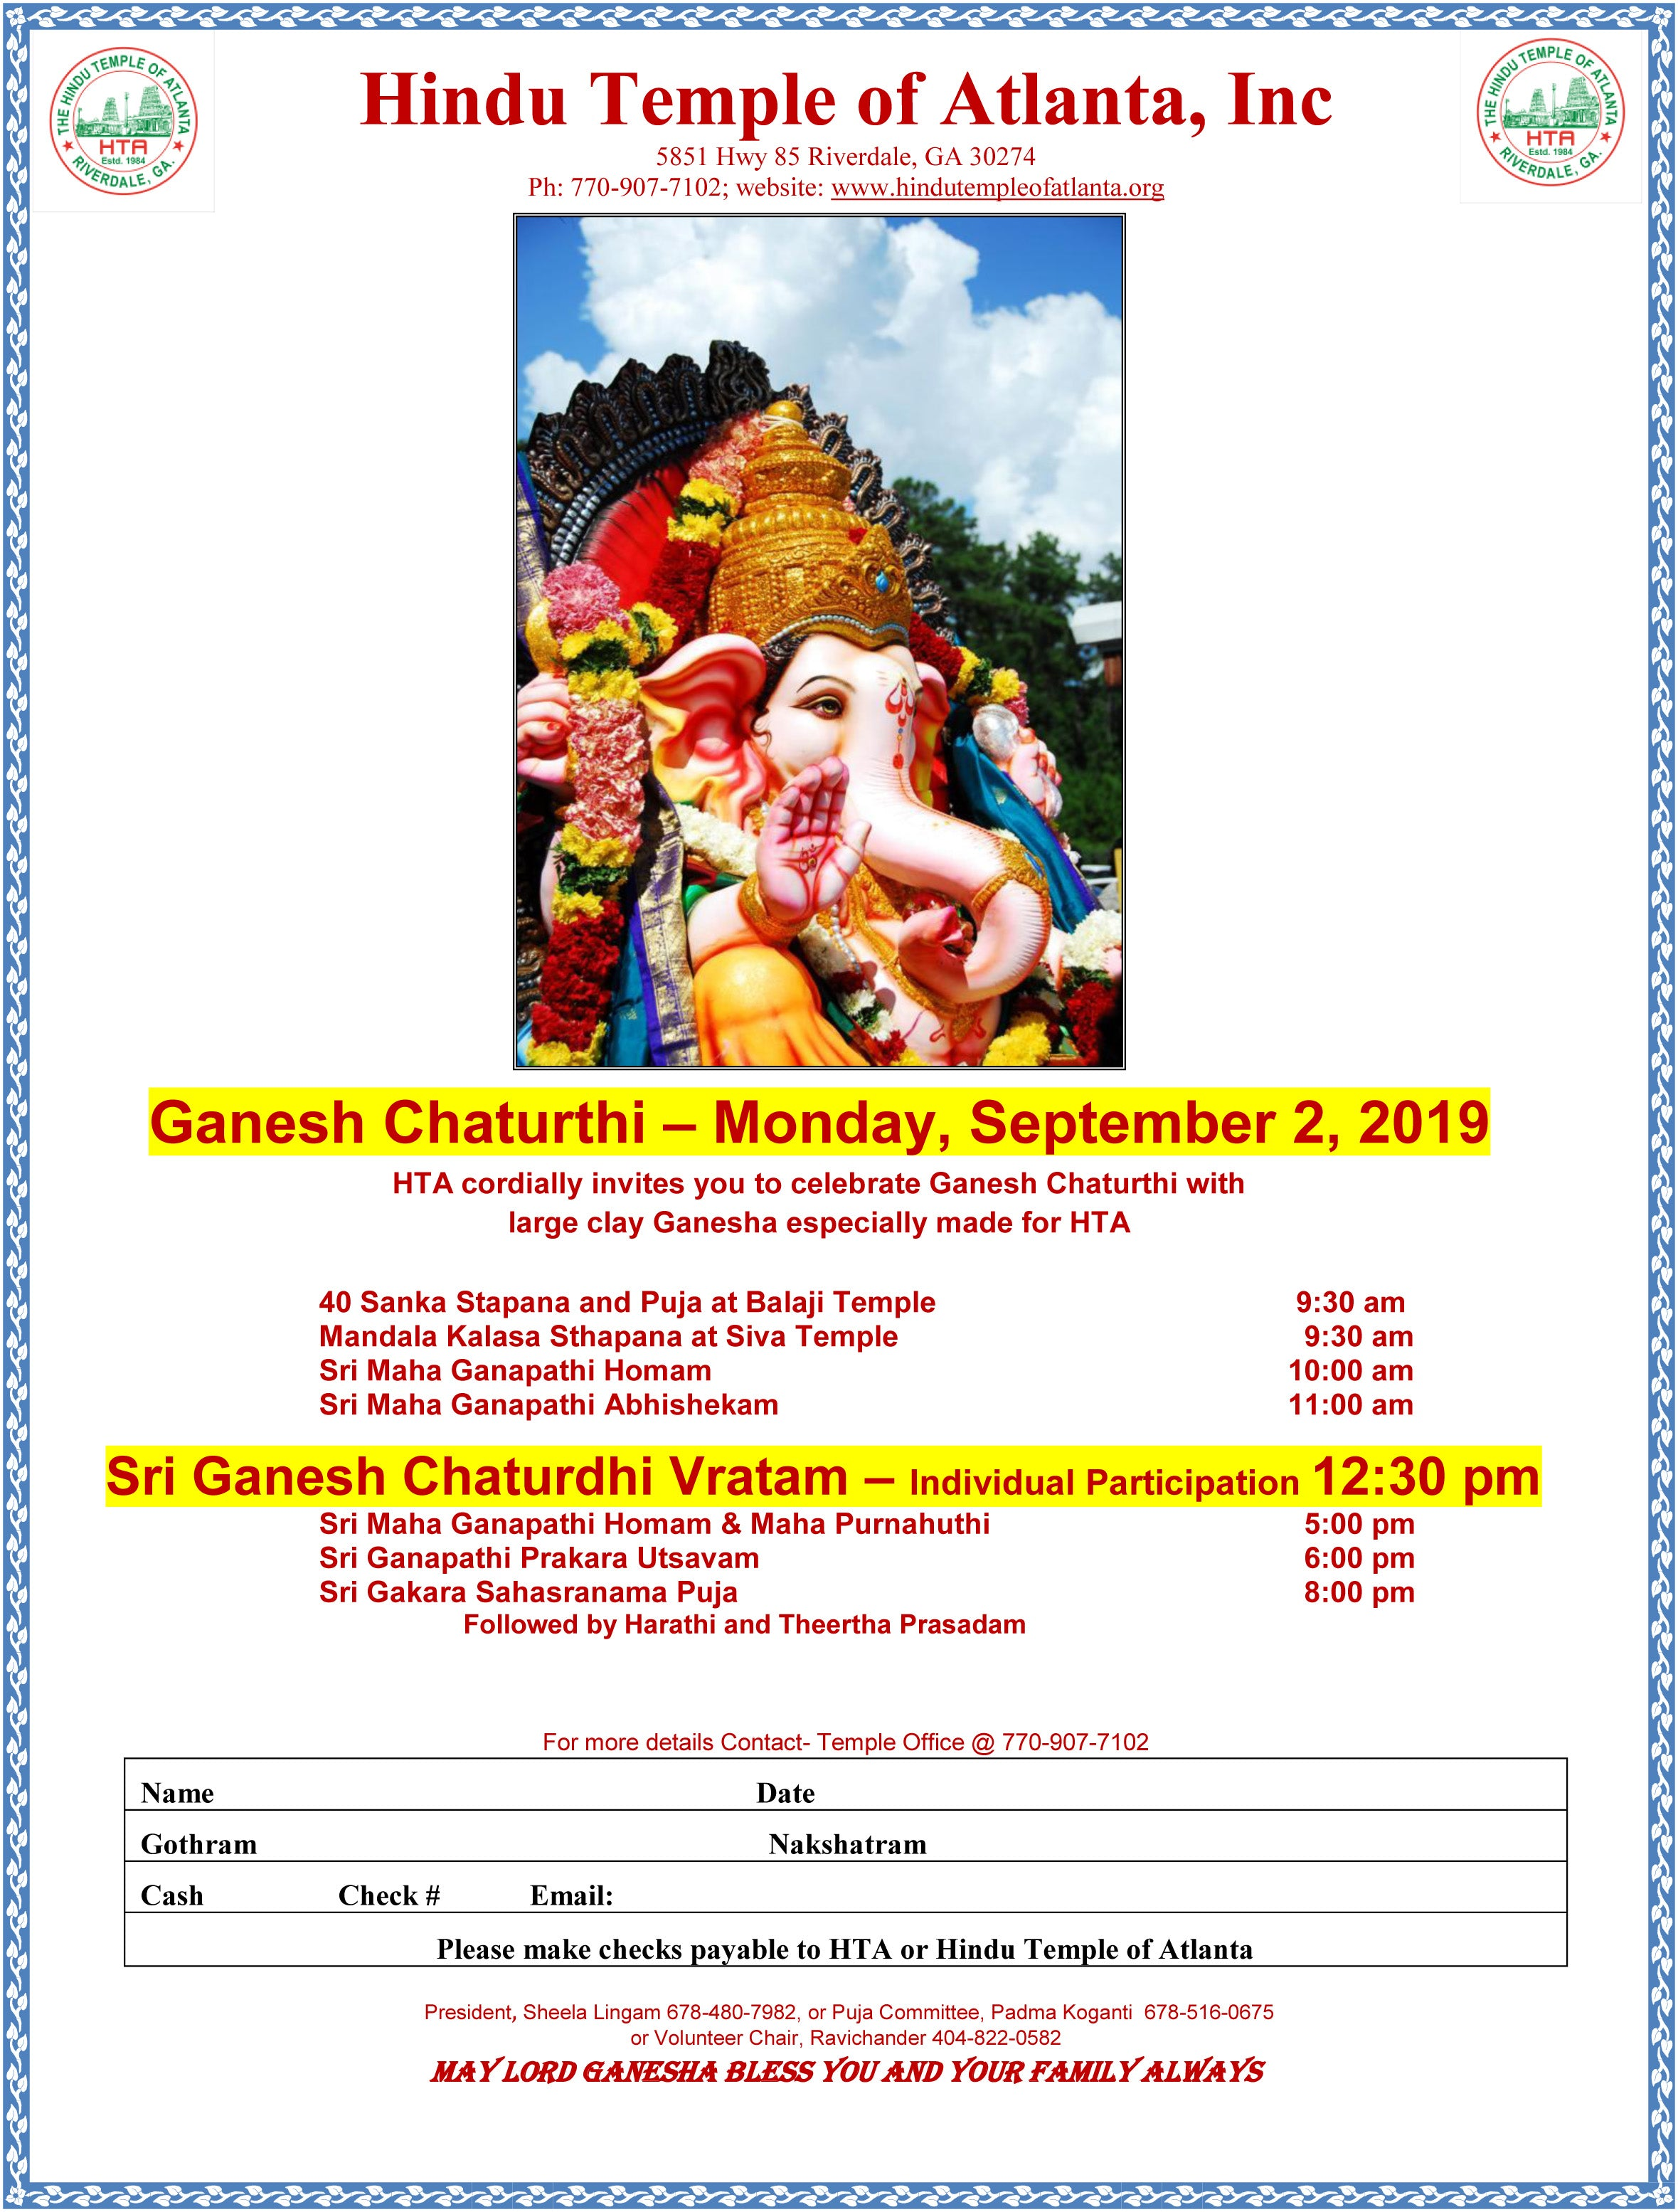 Special Events – Hindu Temple of Atlanta